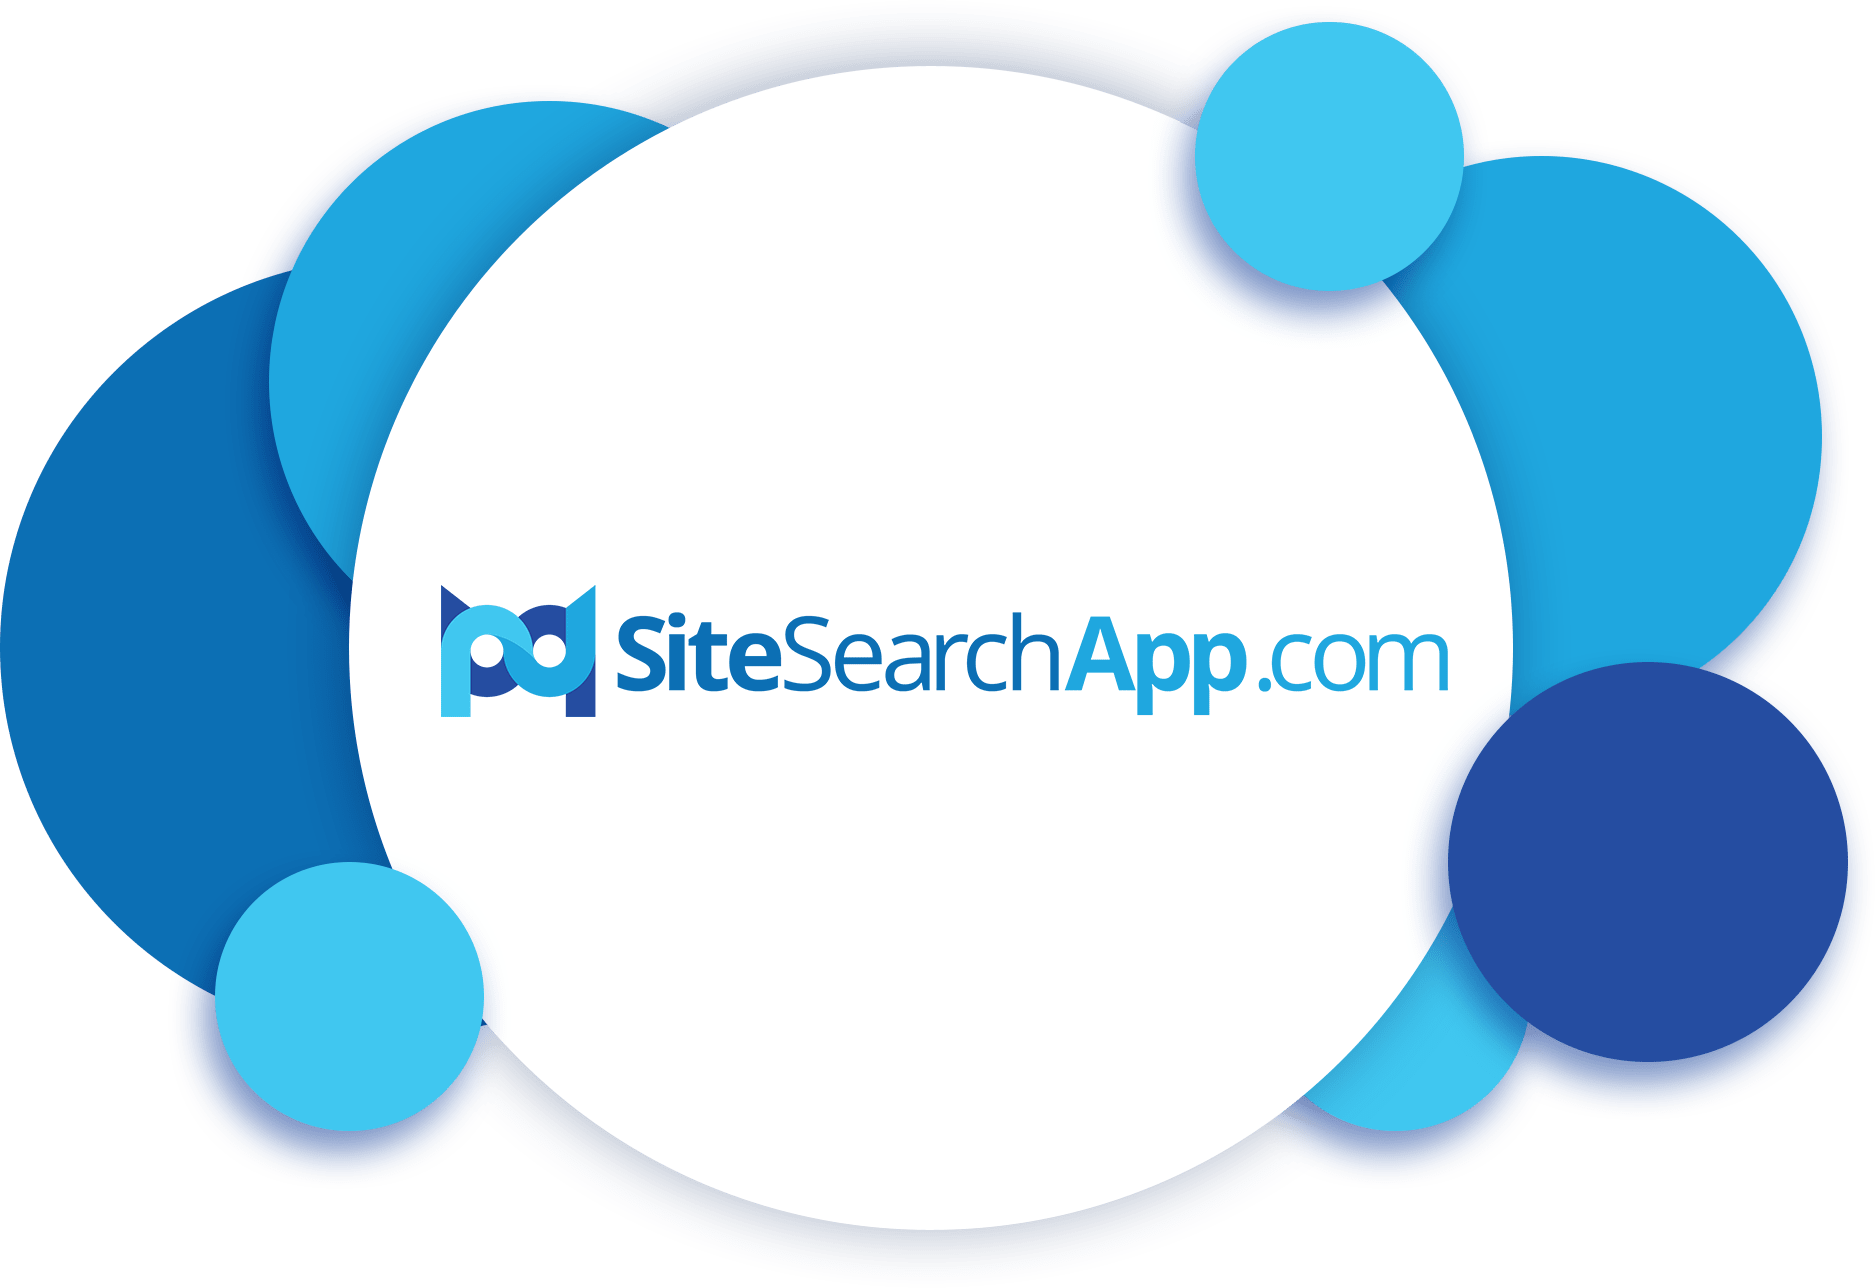 SCI Global Services Inc., SiteSearchApp